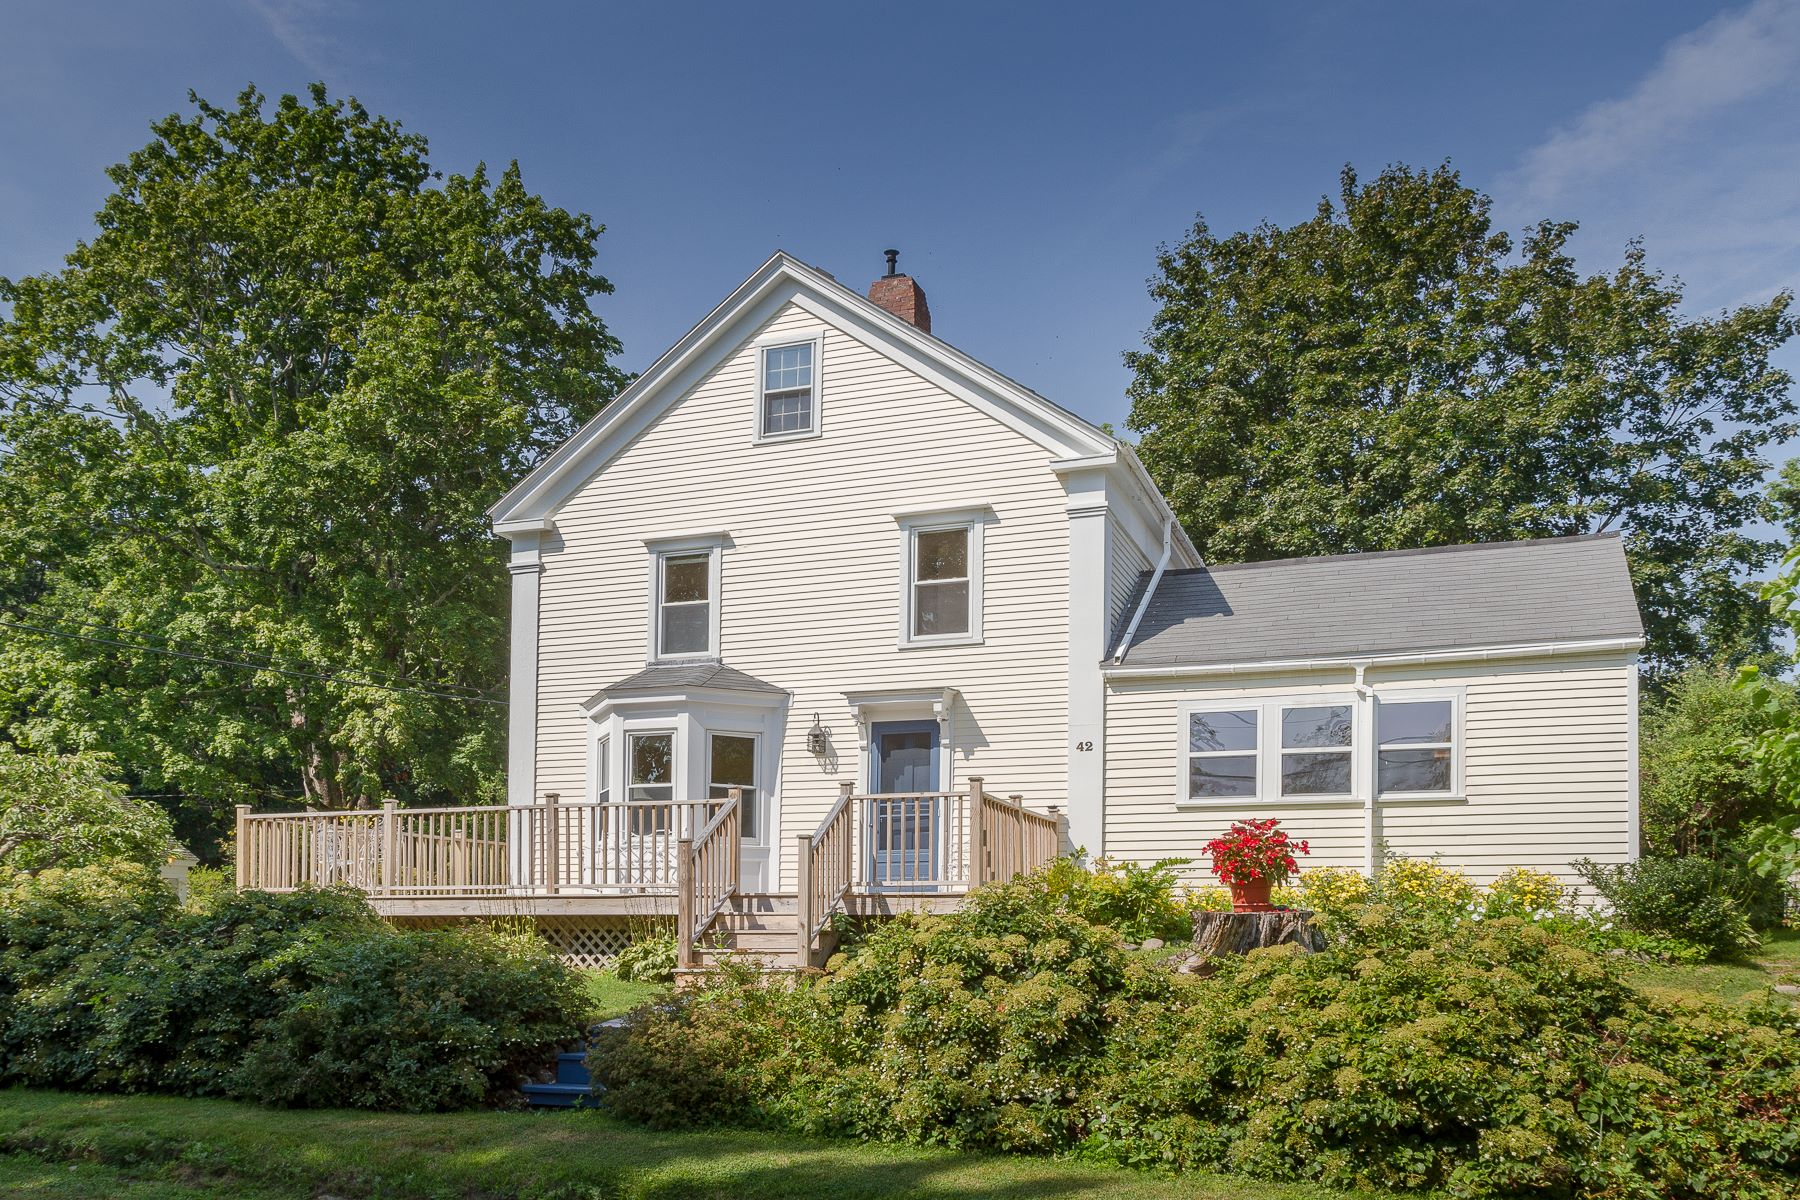 Single Family Home for Sale at 42 Sea Street Rockport, Maine 04856 United States